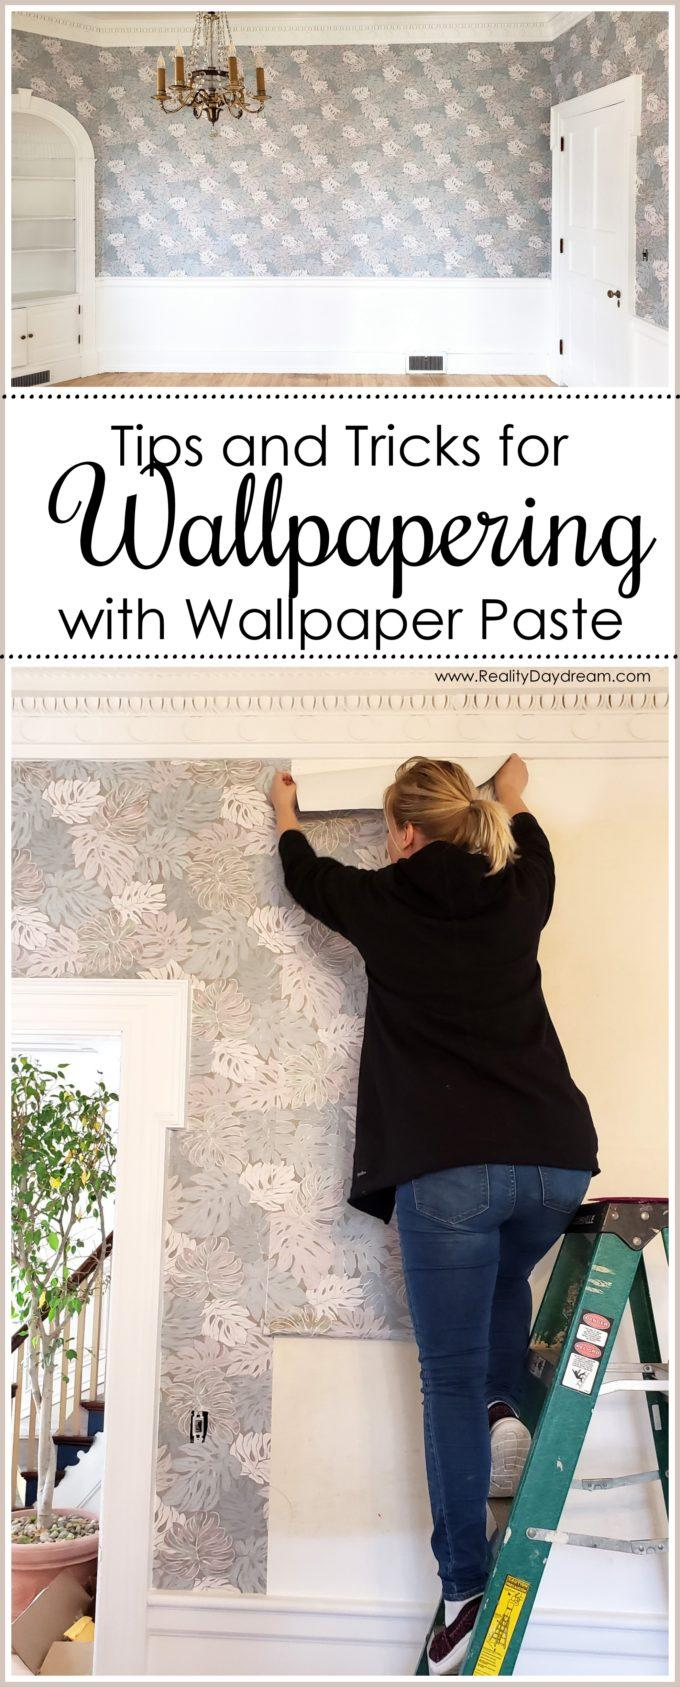 Putting Up Wallpaper With Wallpaper Paste Reality Daydream Wallpaper Paste How To Hang Wallpaper Wallpapering Tips